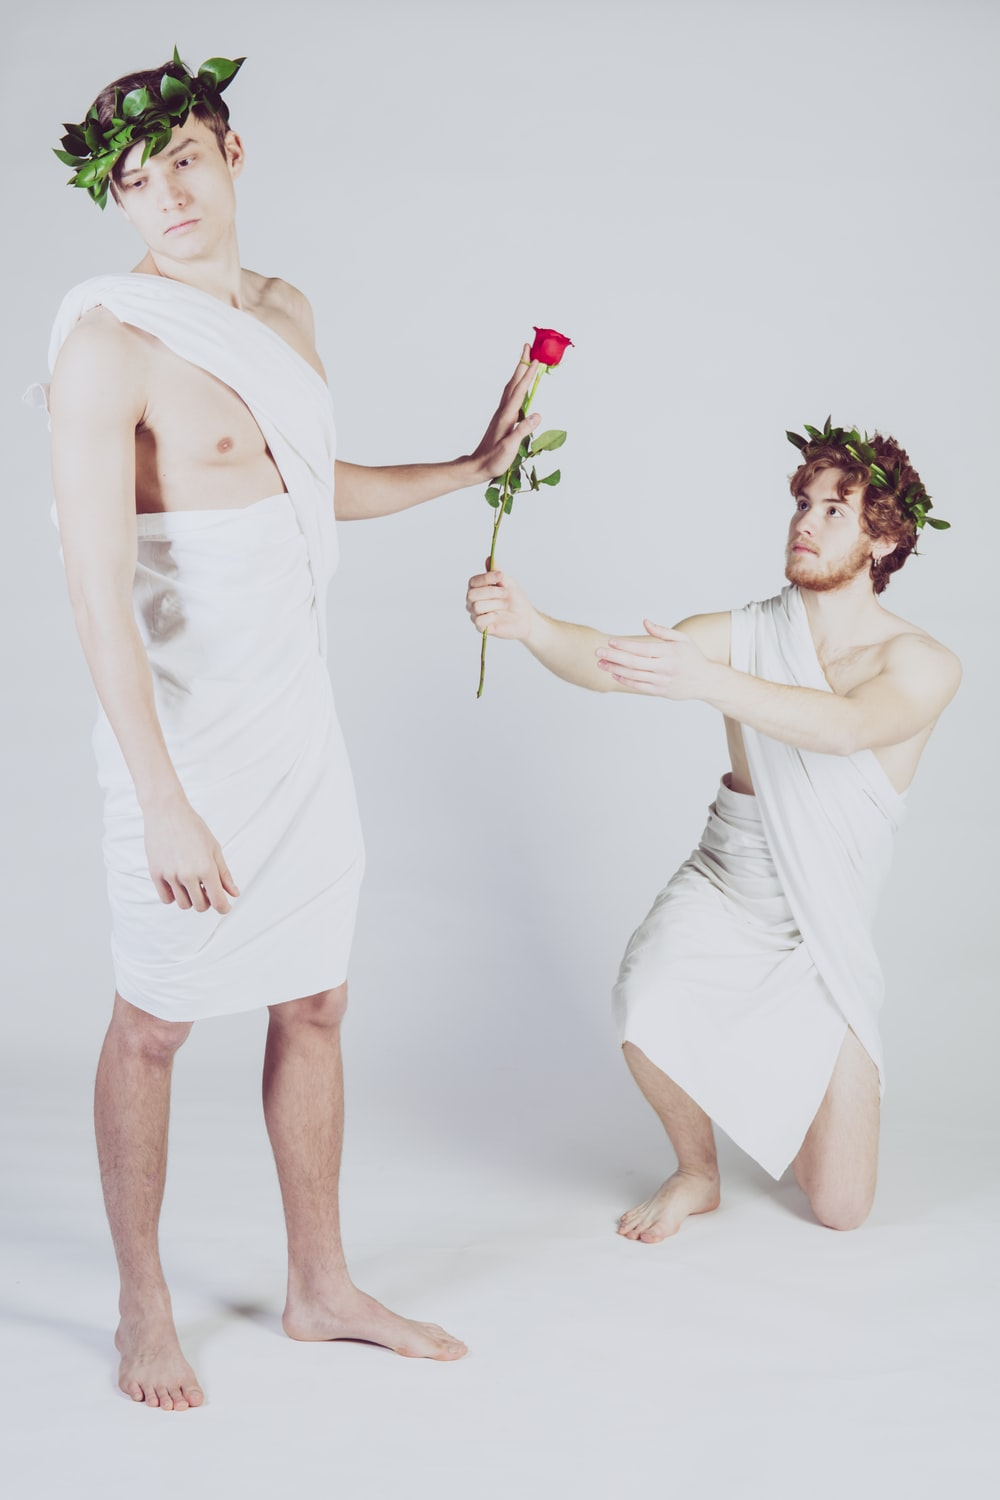 man giving rose to another man